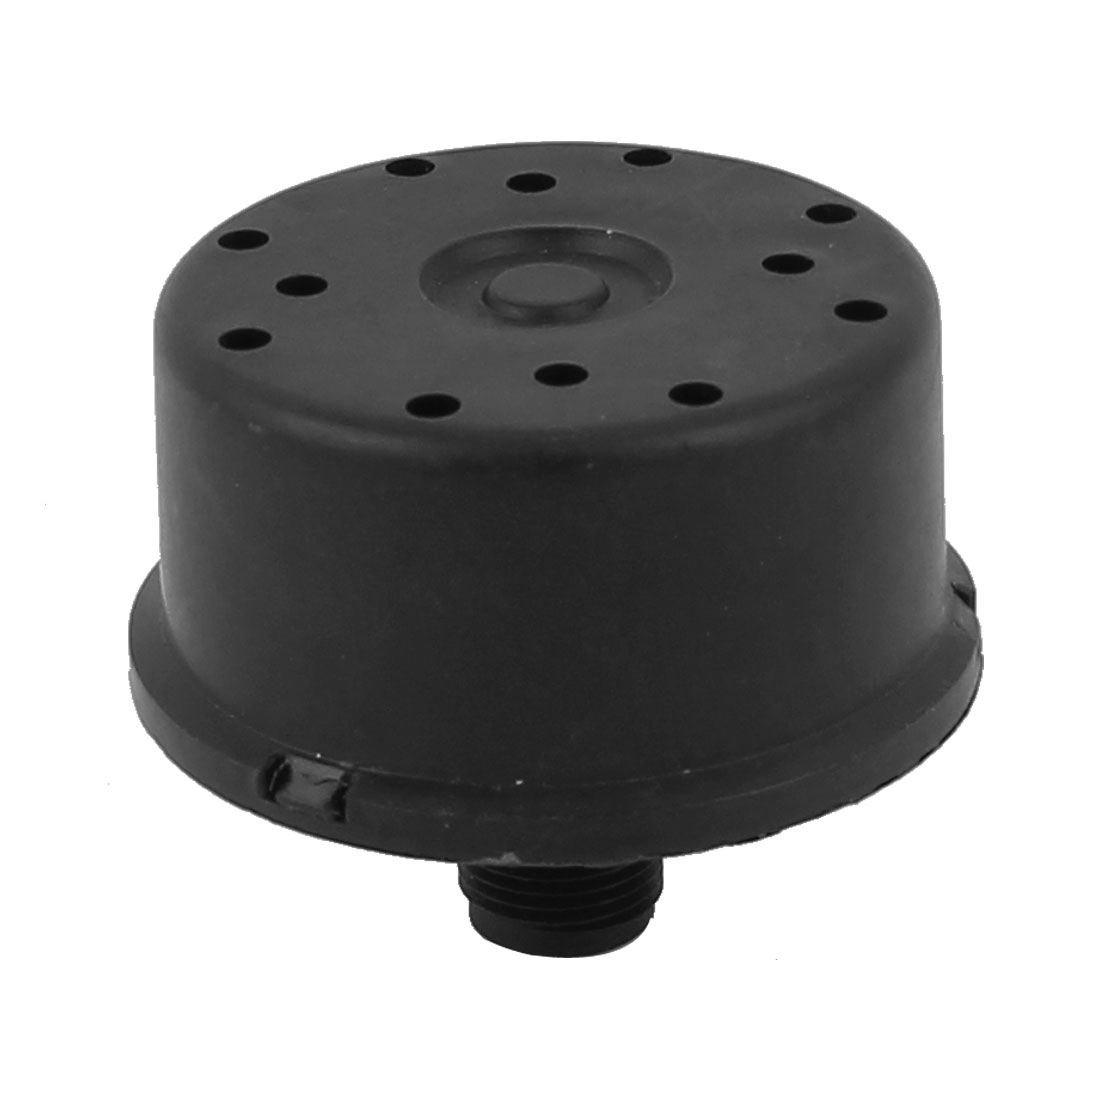 Air Compressor Plastic Black Shell 17mm Thread Filter Muffler